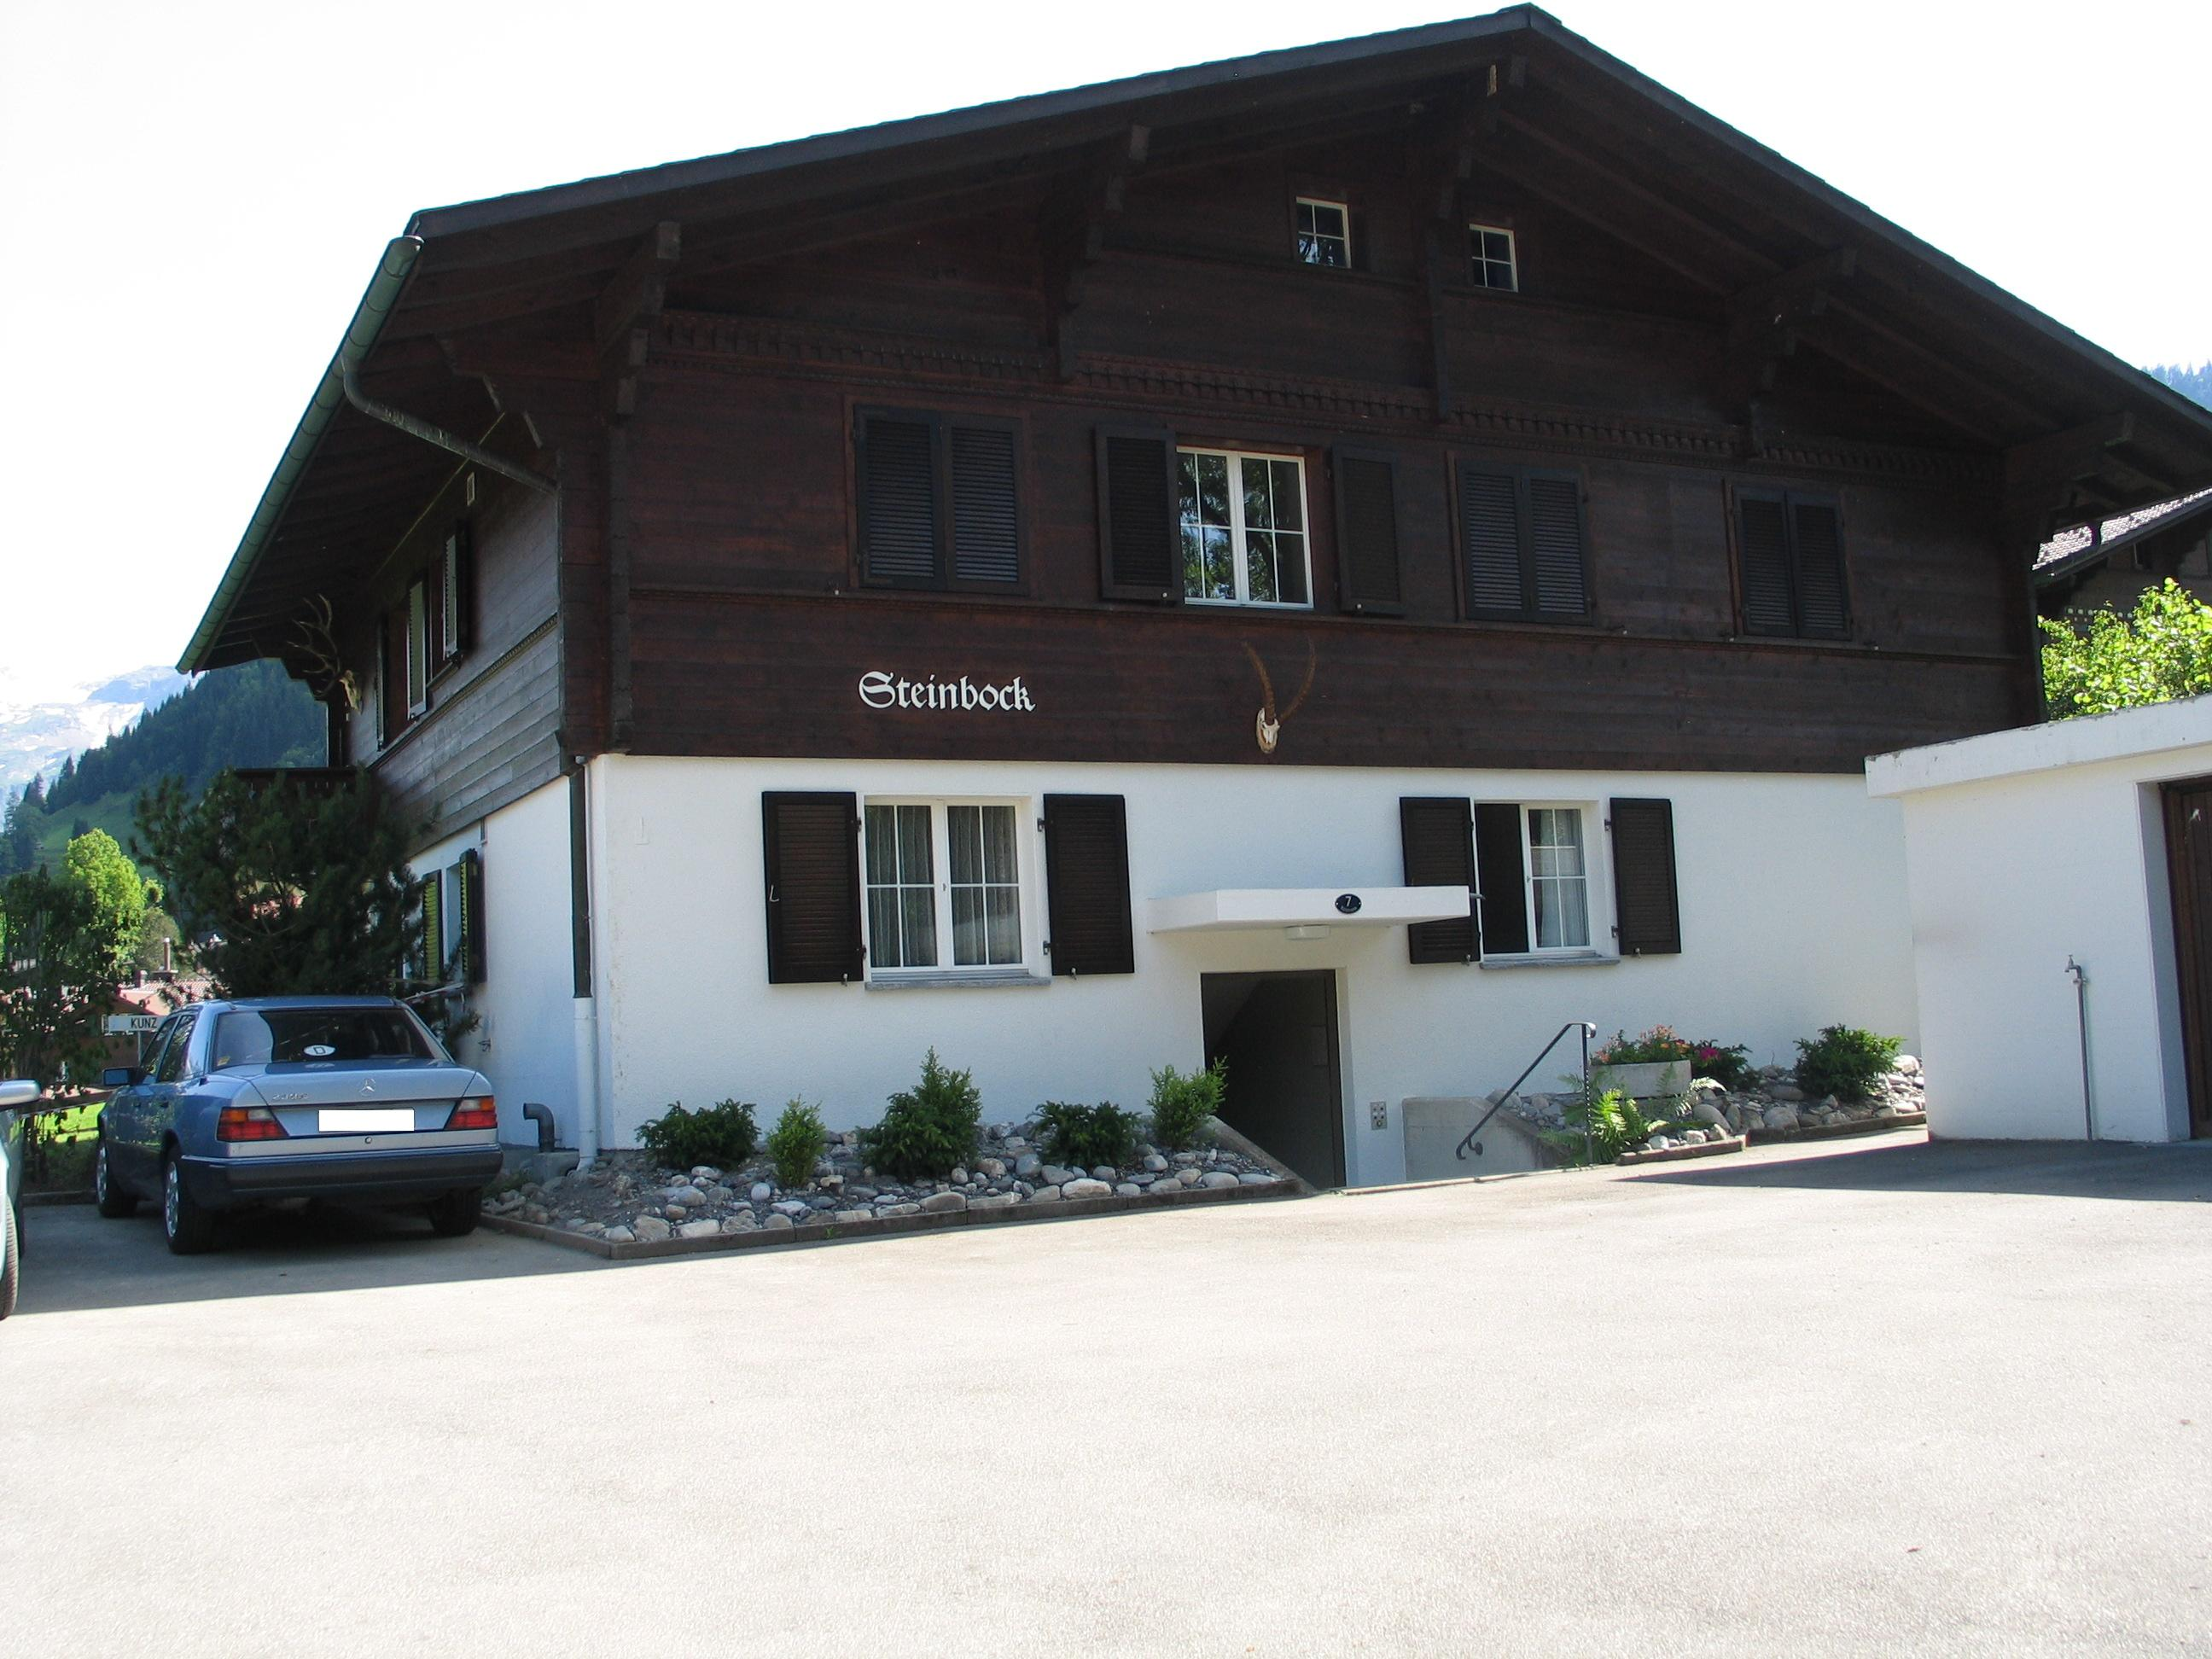 Steinbock # 3 - Apartment - Lenk - Exterior - Winter